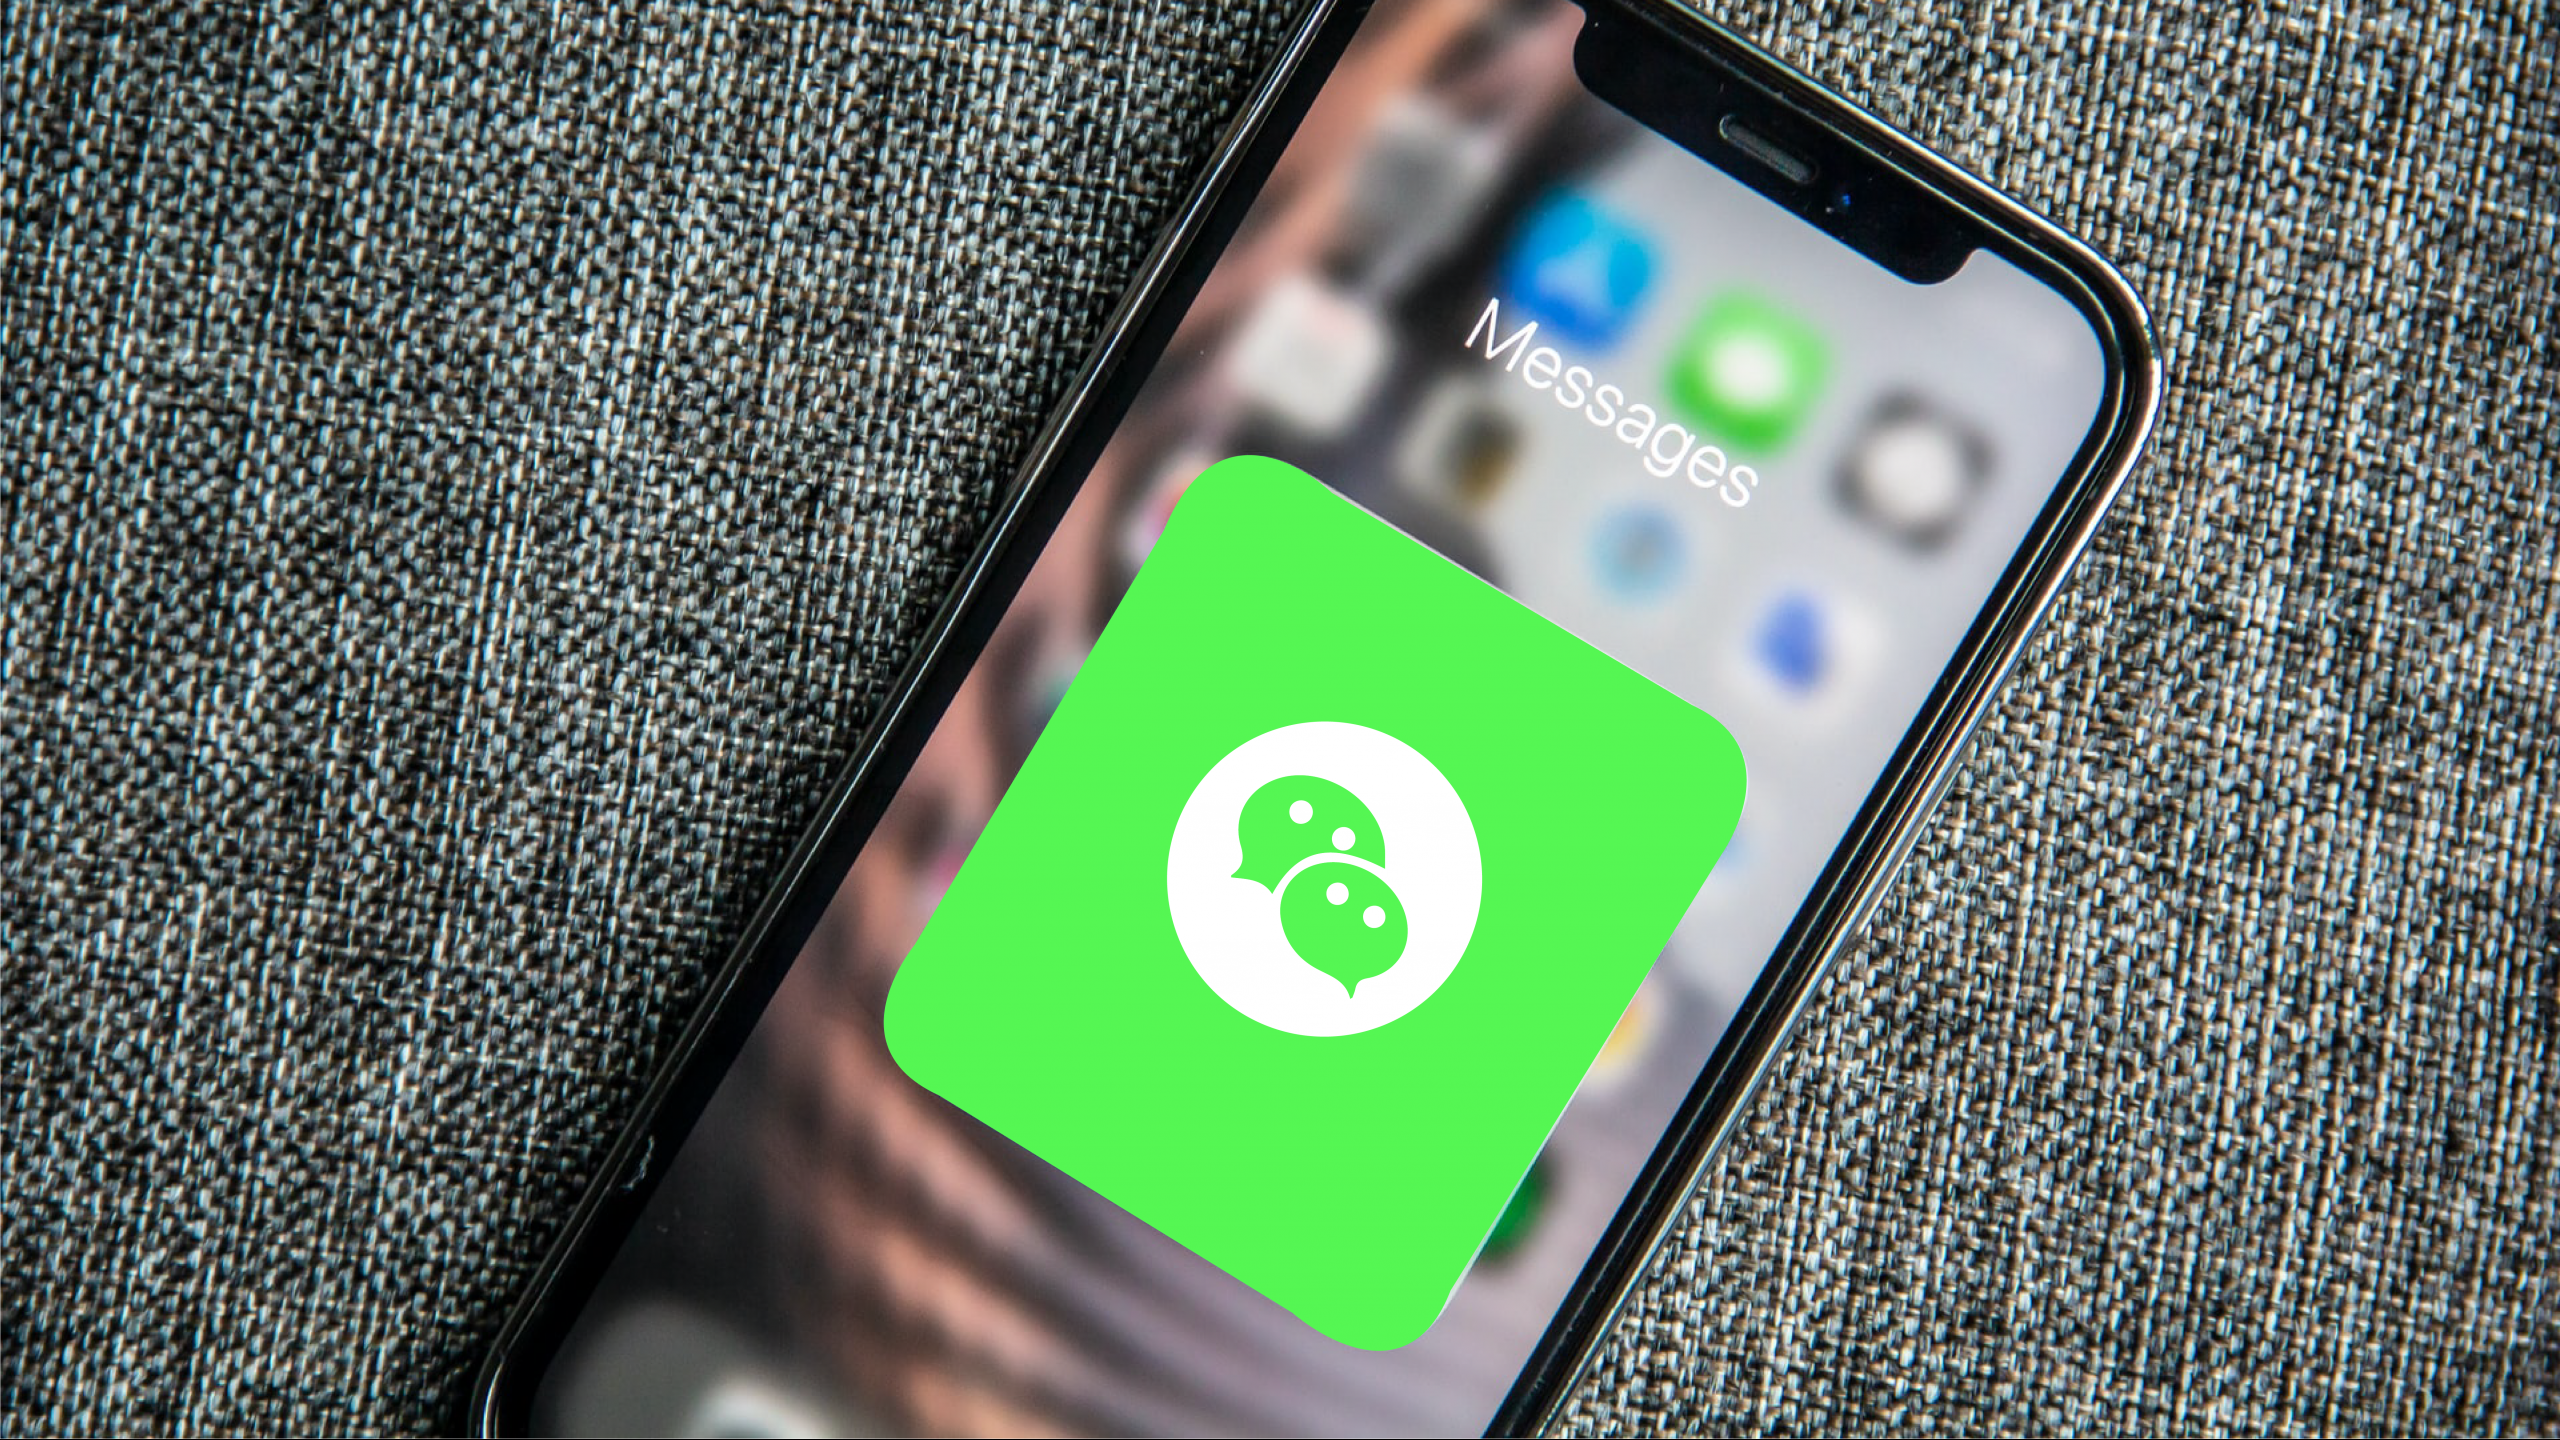 WeChat marketing feature image